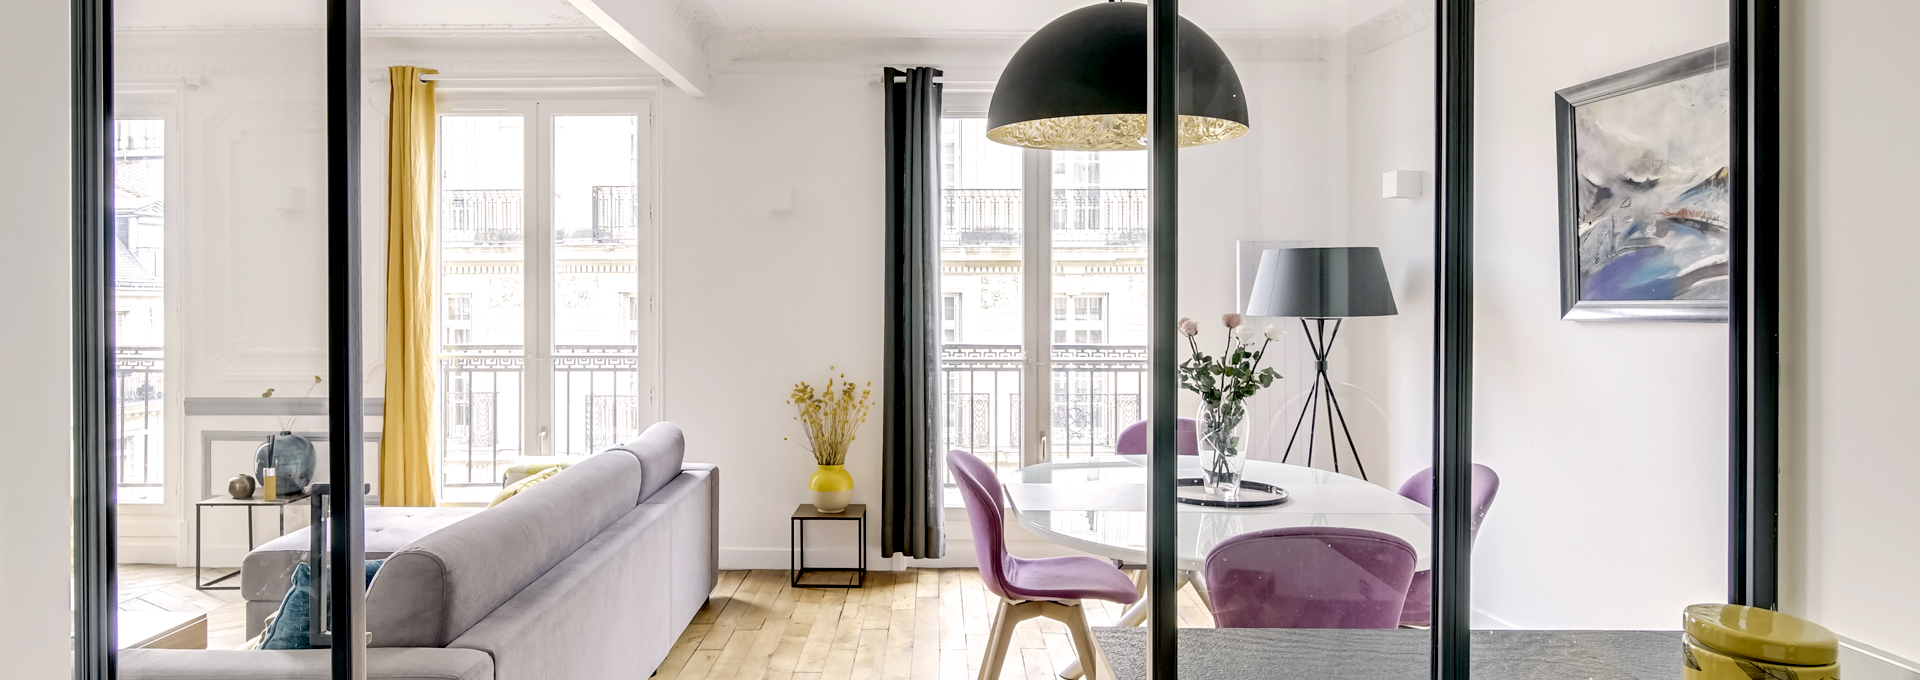 P_Agence-Avous-appartement-haussmannien-renovation-decoration-luxe